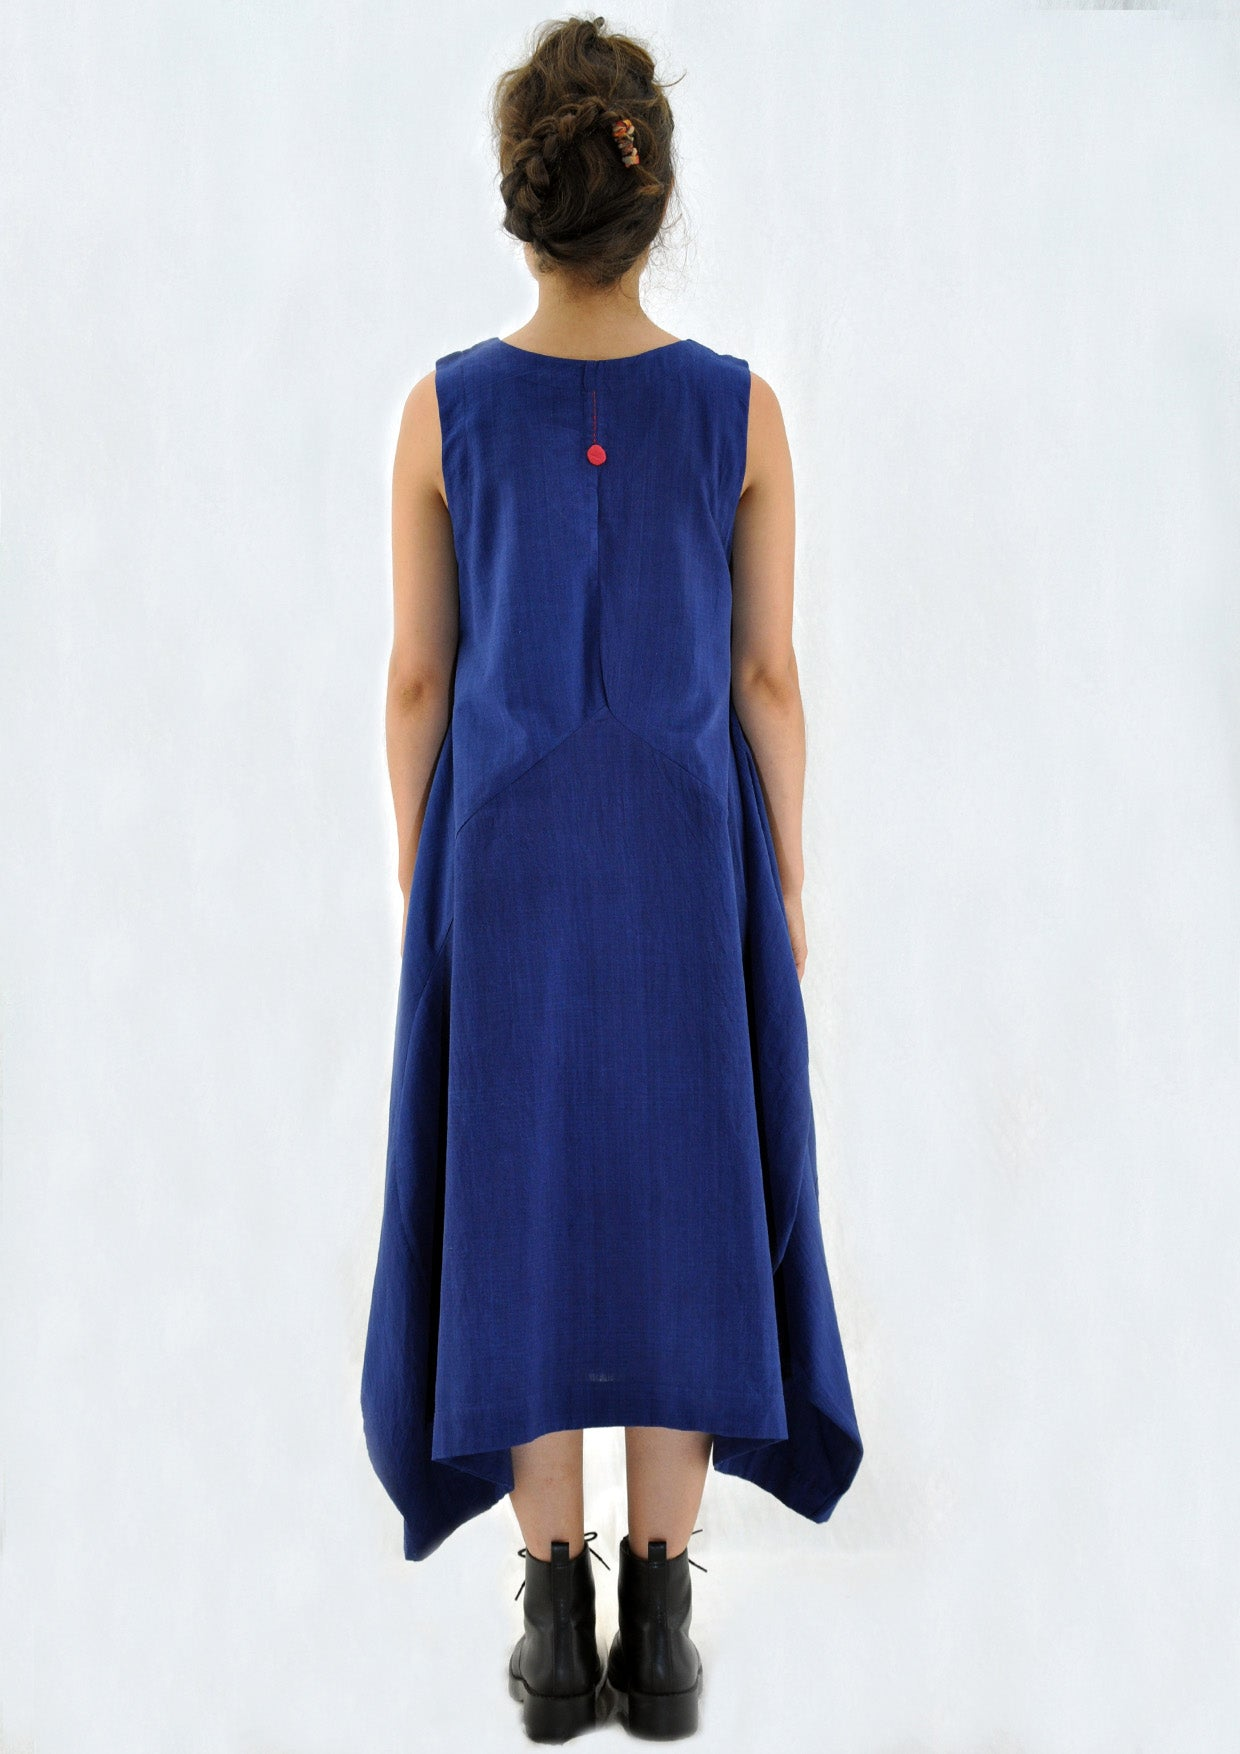 Natural Indigo Khadi Dress - INES - Upasana Design Studio